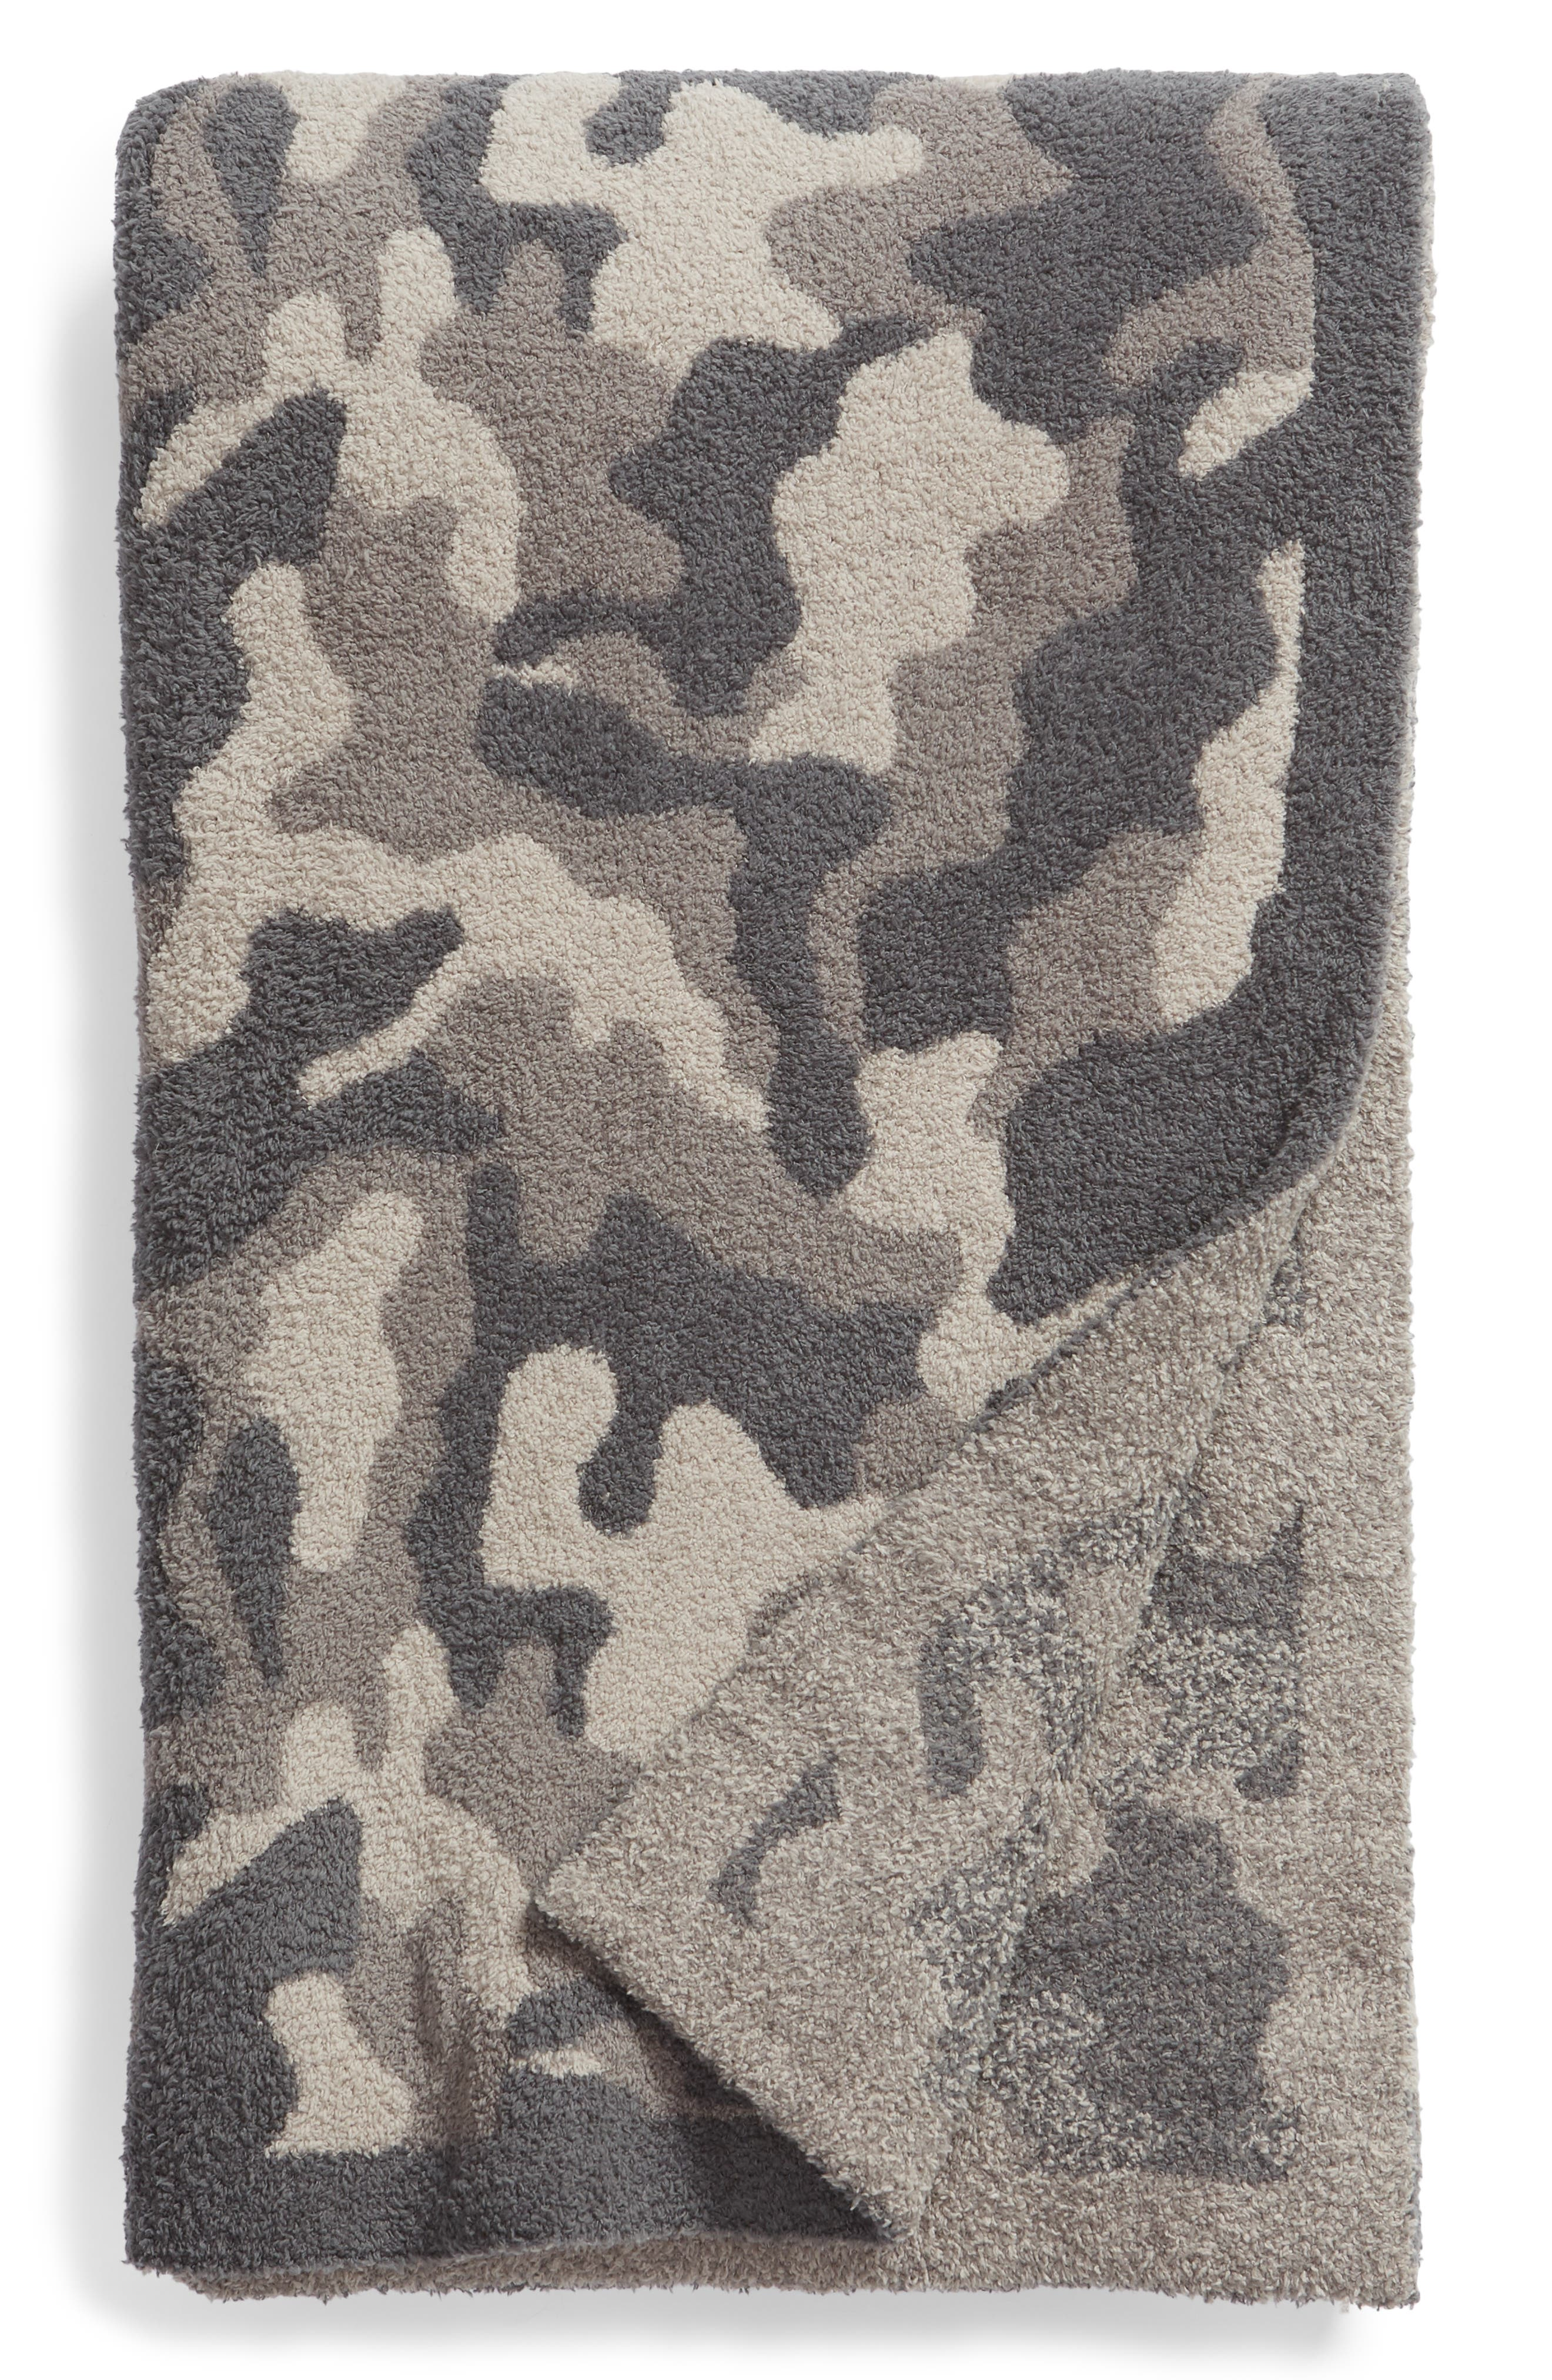 Cozy Chic® Camo Throw Blanket by Barefoot Dreams®